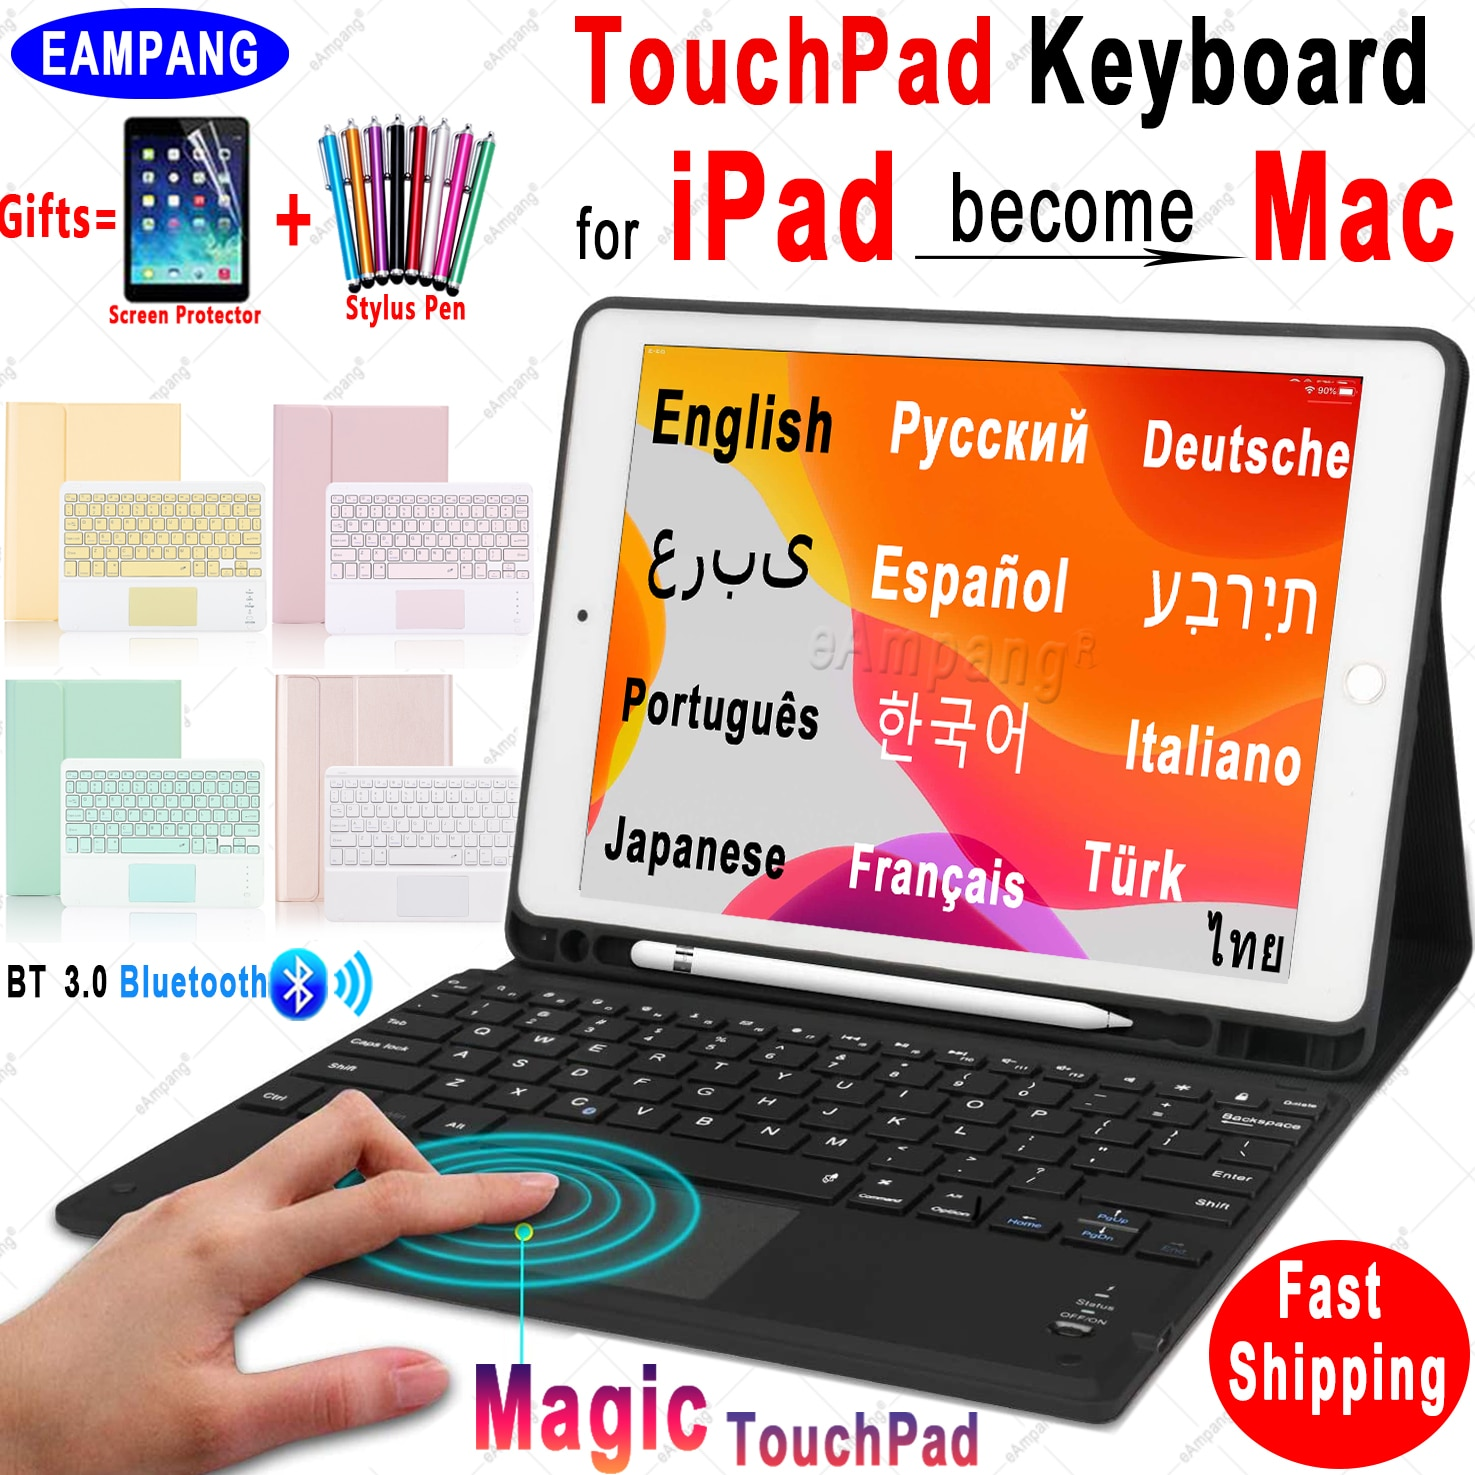 Magic TouchPad Keyboard for iPad 10.2 Keyboard Case for Apple iPad 9.7 2017 2018 Air 2 3 4 Pro 9.7 1